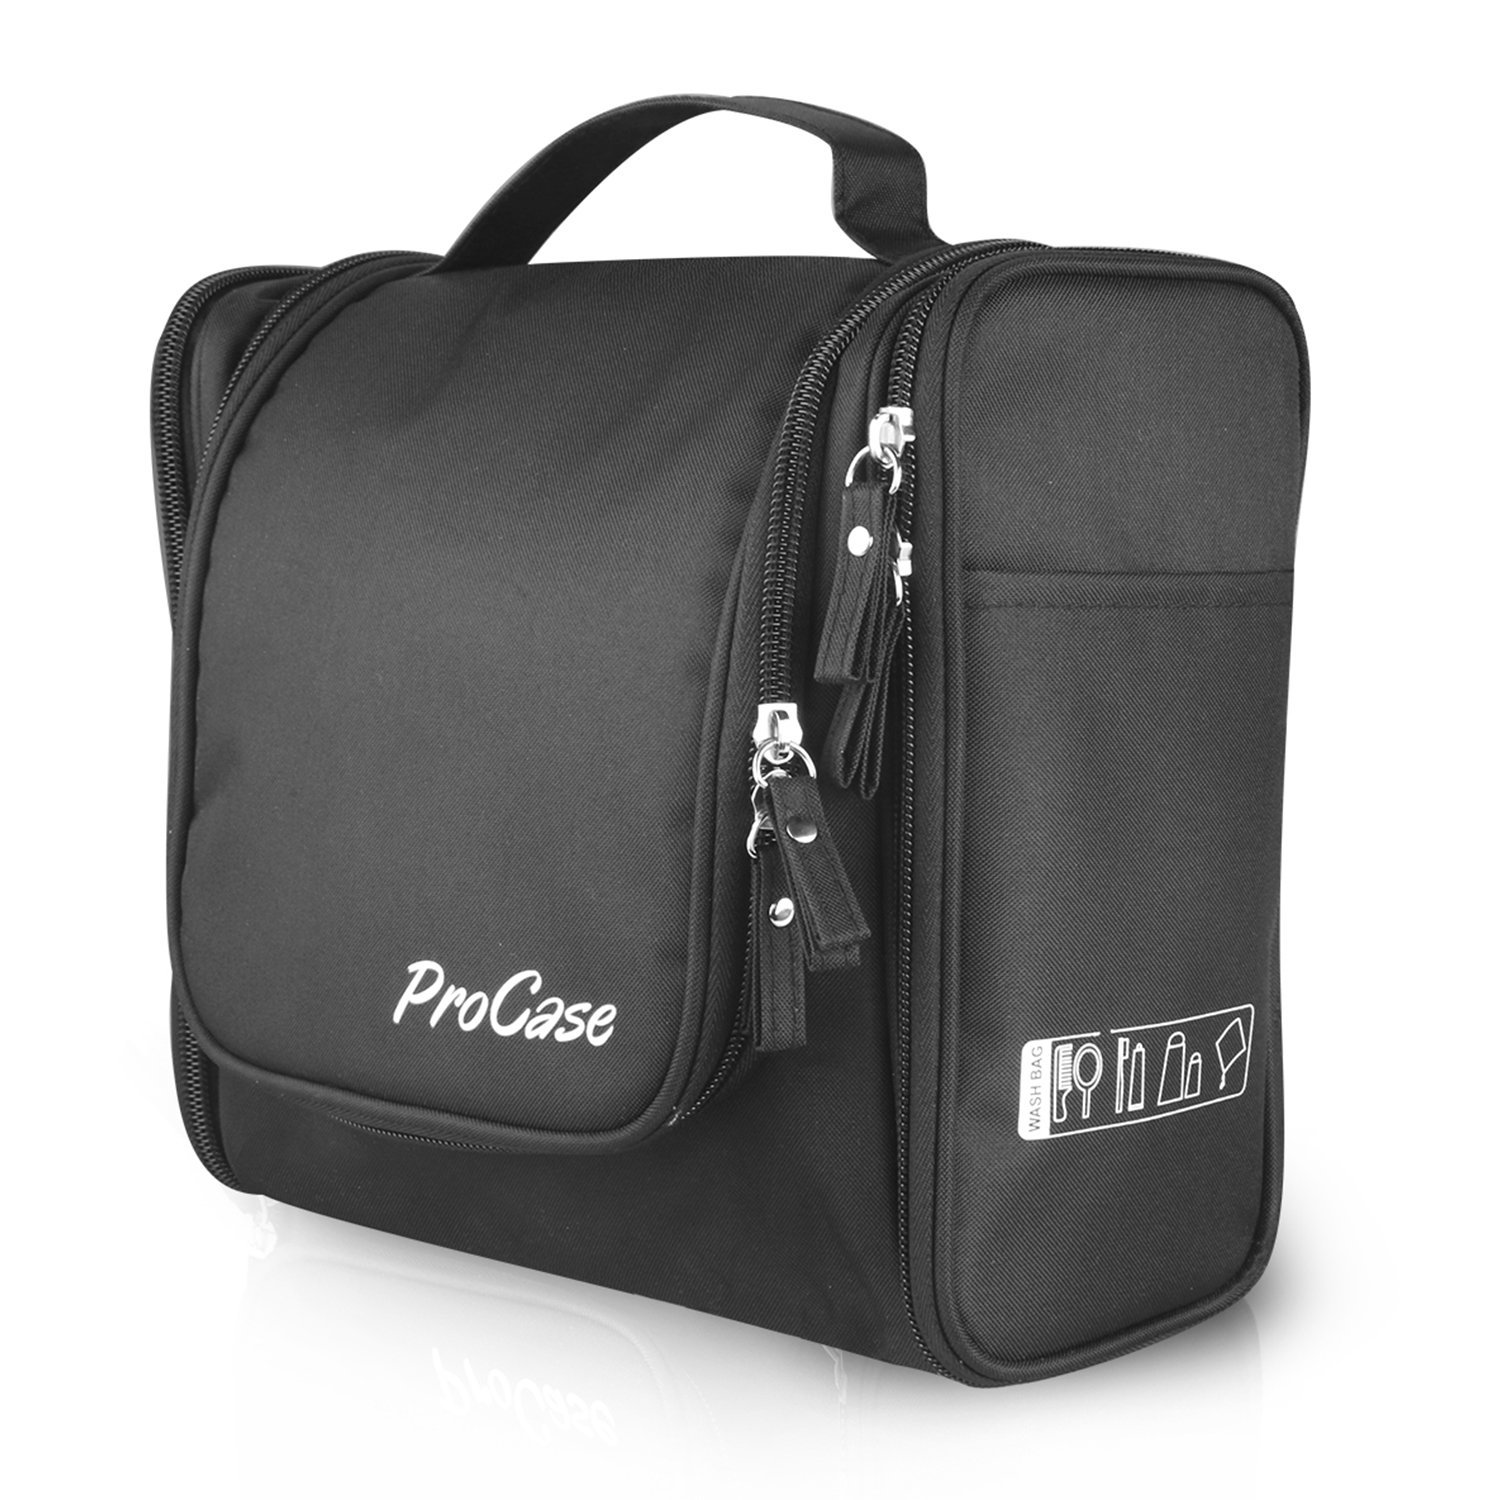 ProCase Toiletry Bag With Hanging Hook, Organizer For Travel Accessories,  Makeup, Shampoo,